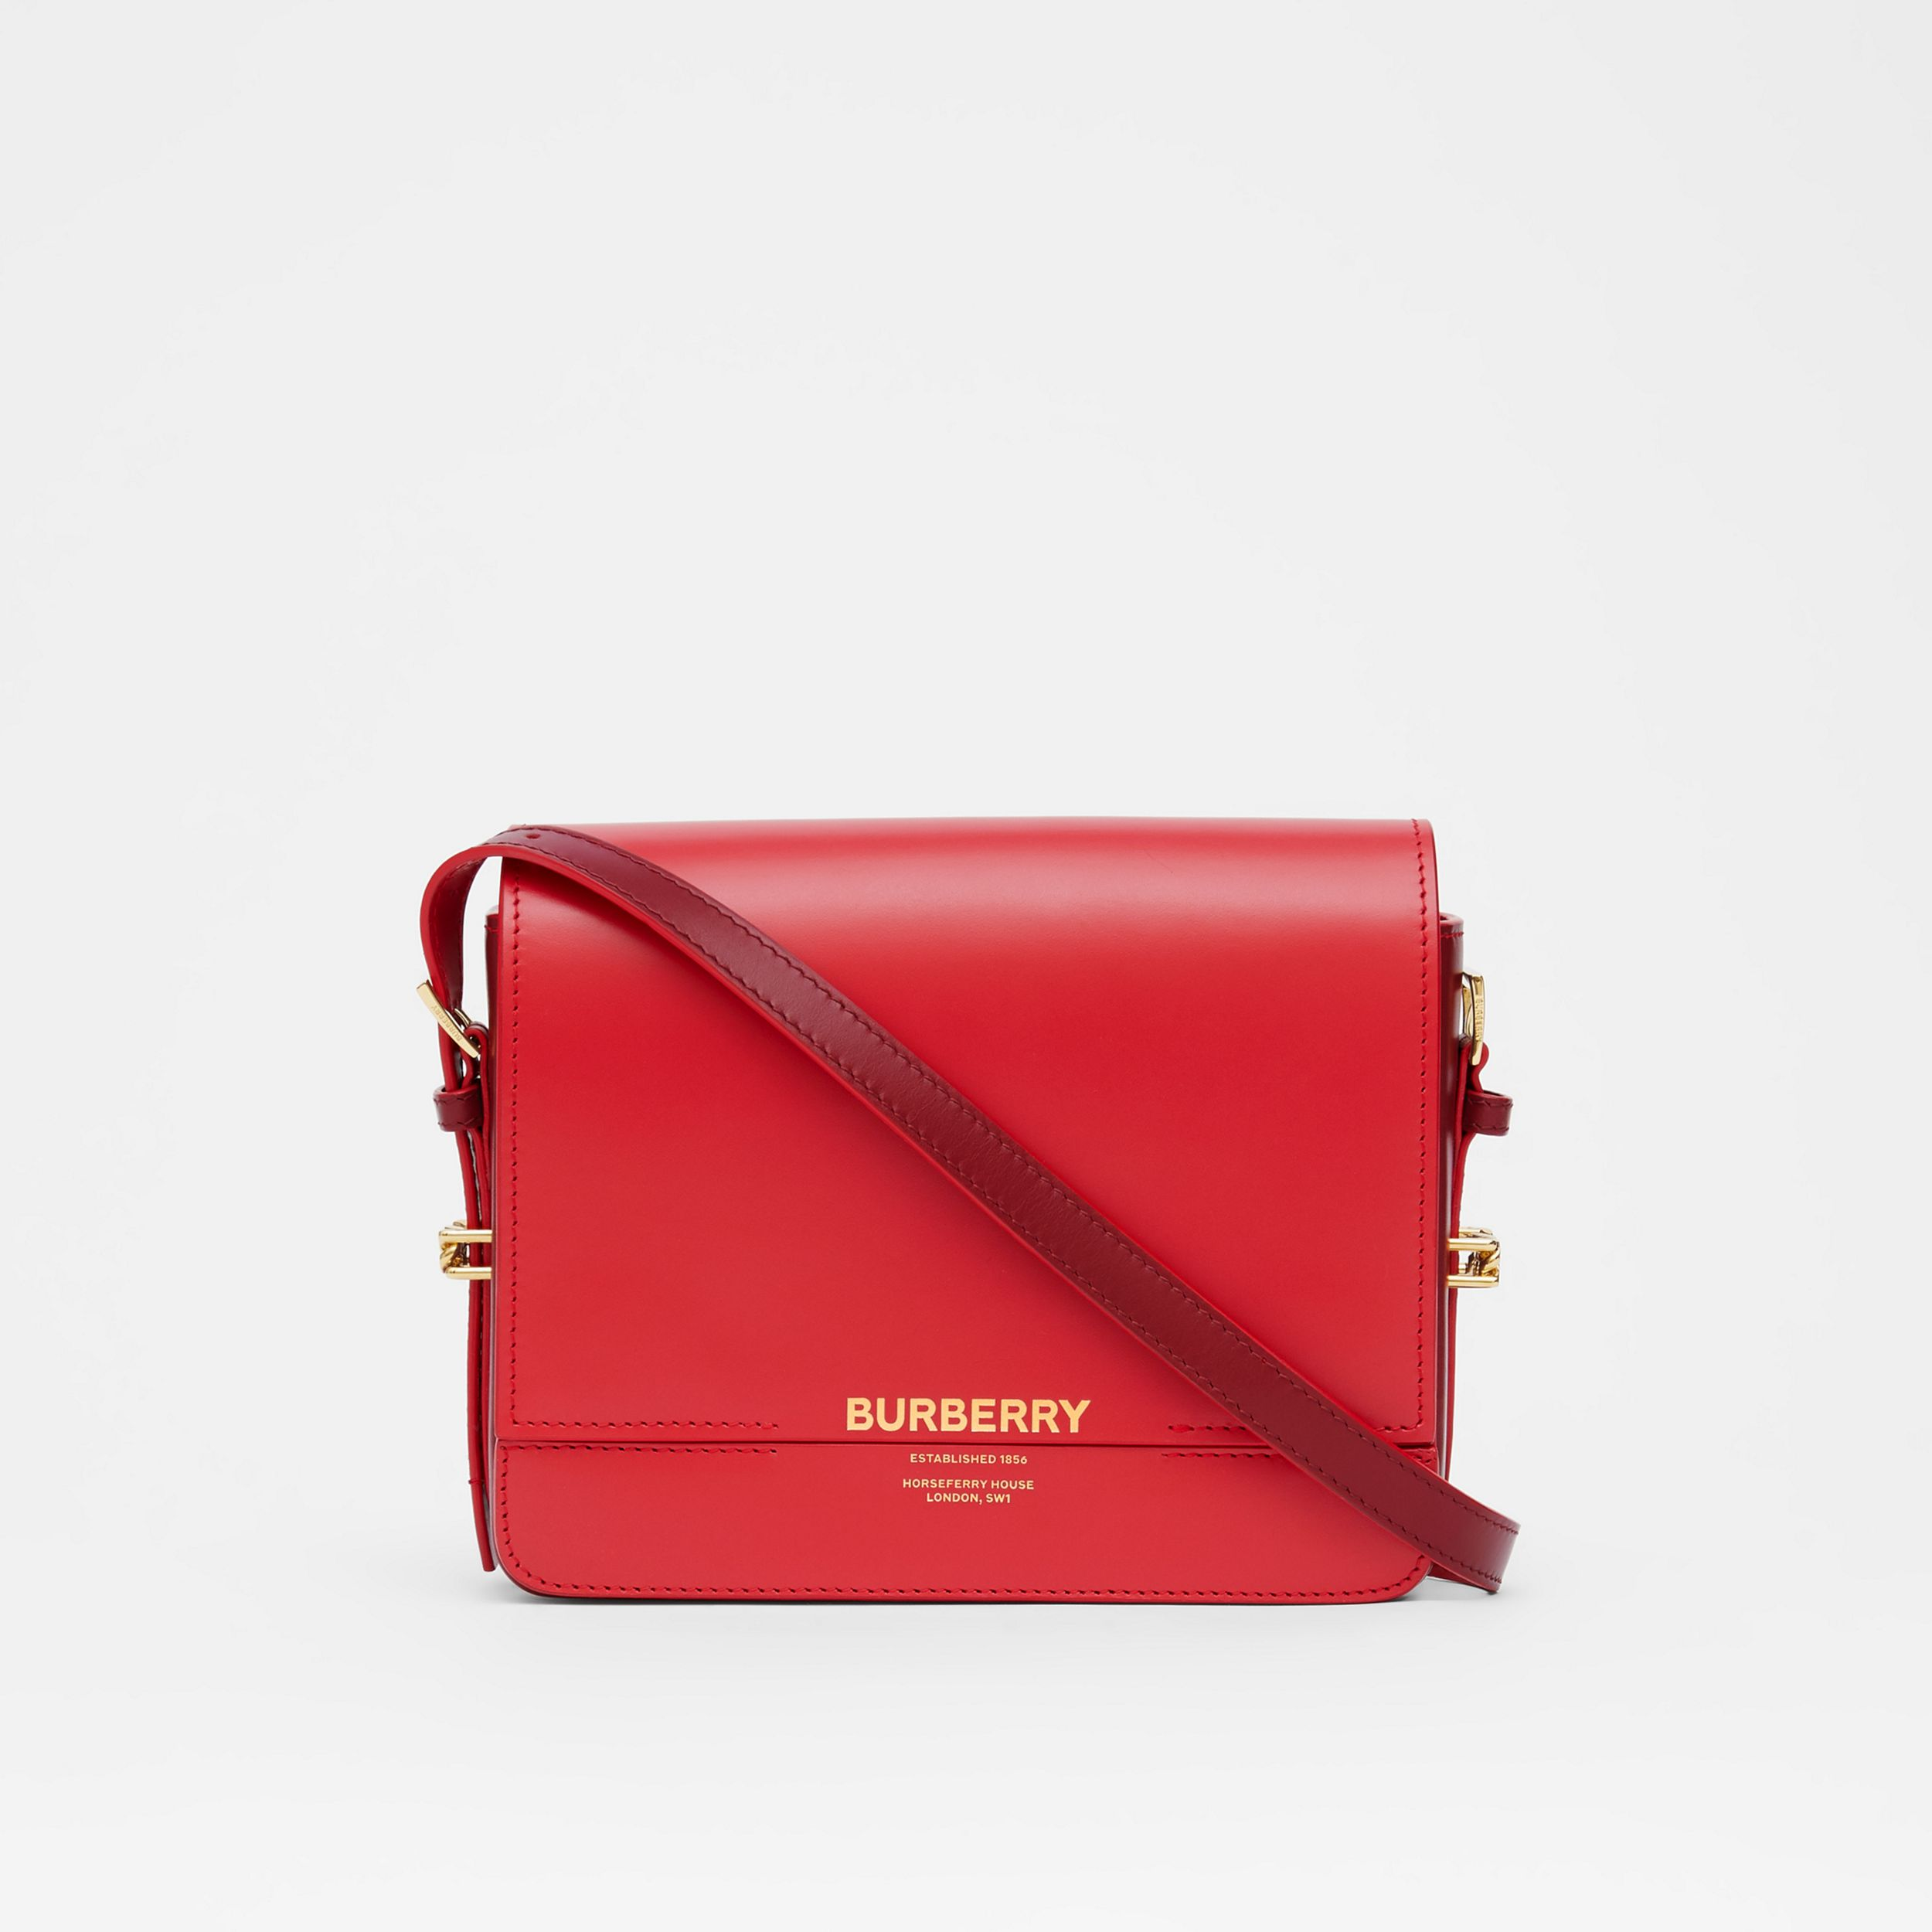 Small Two-tone Leather Grace Bag in Bright Red/burgundy - Women | Burberry - 1